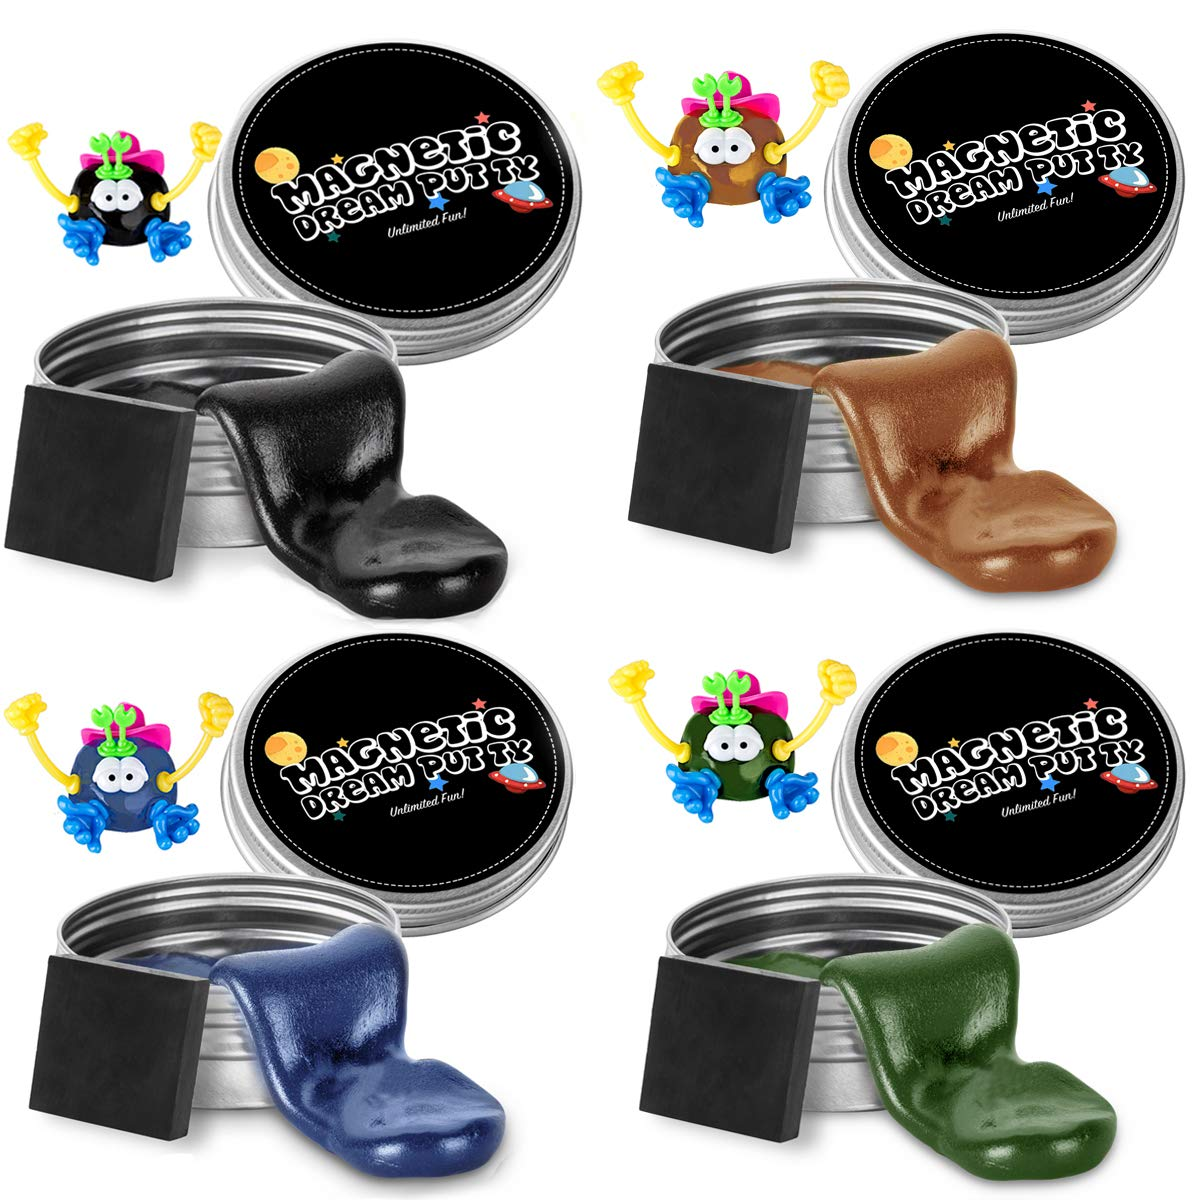 ILC Magnetic Putty Playdough Creative Magnet Toy Slime Stress Reliever for Kids and Adults for Fun (4 Pack) by ILC (Image #1)